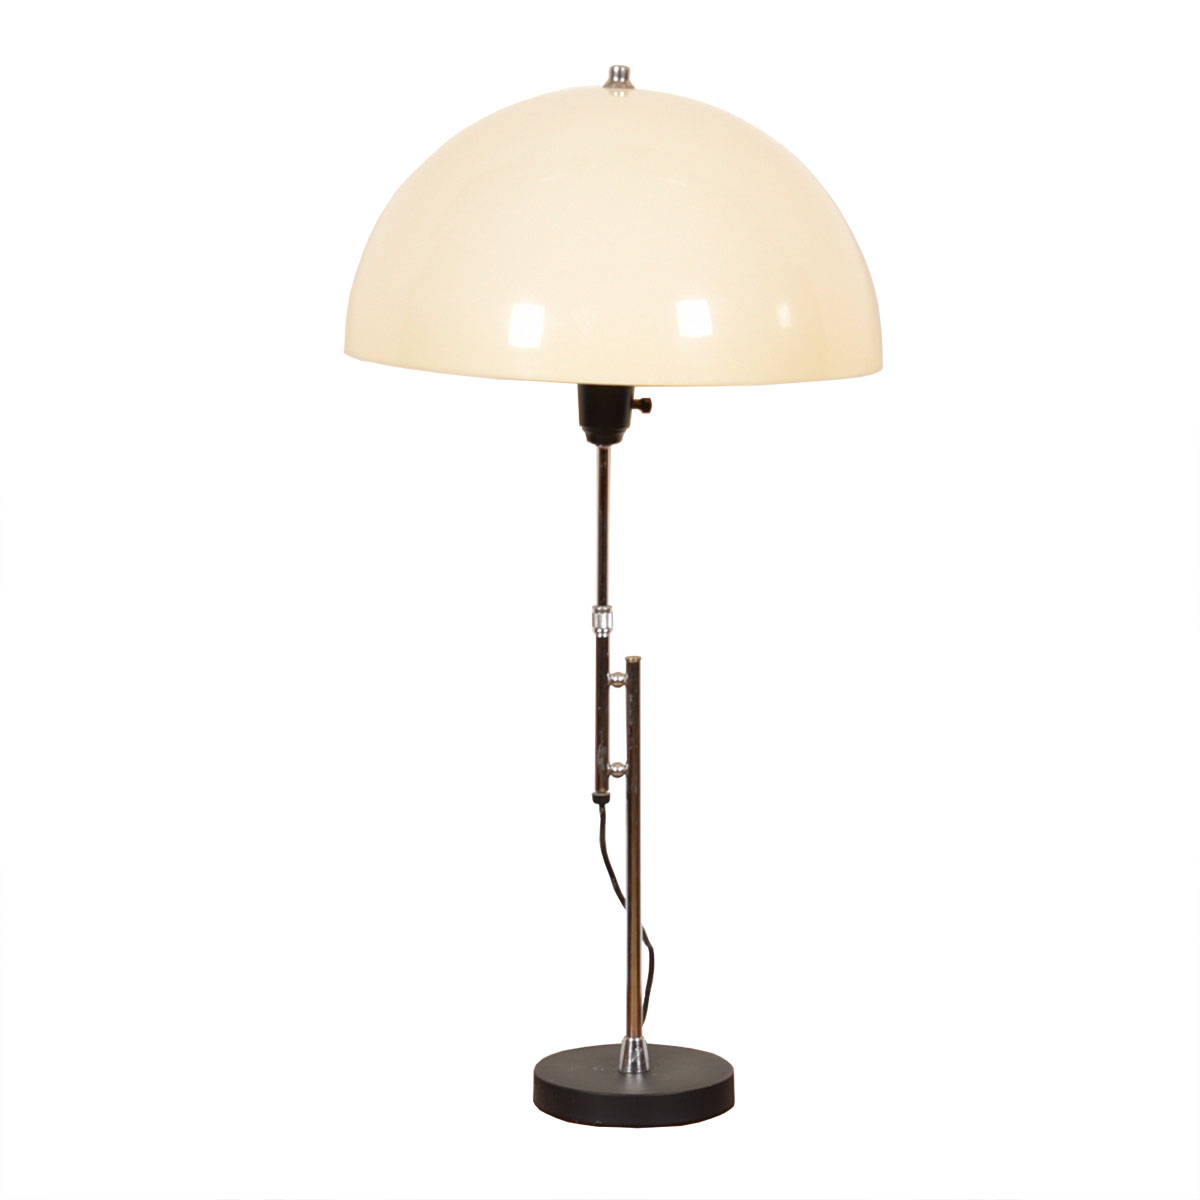 Adj Height Mid Century Chrome Table Lamp w/ Domed Shade